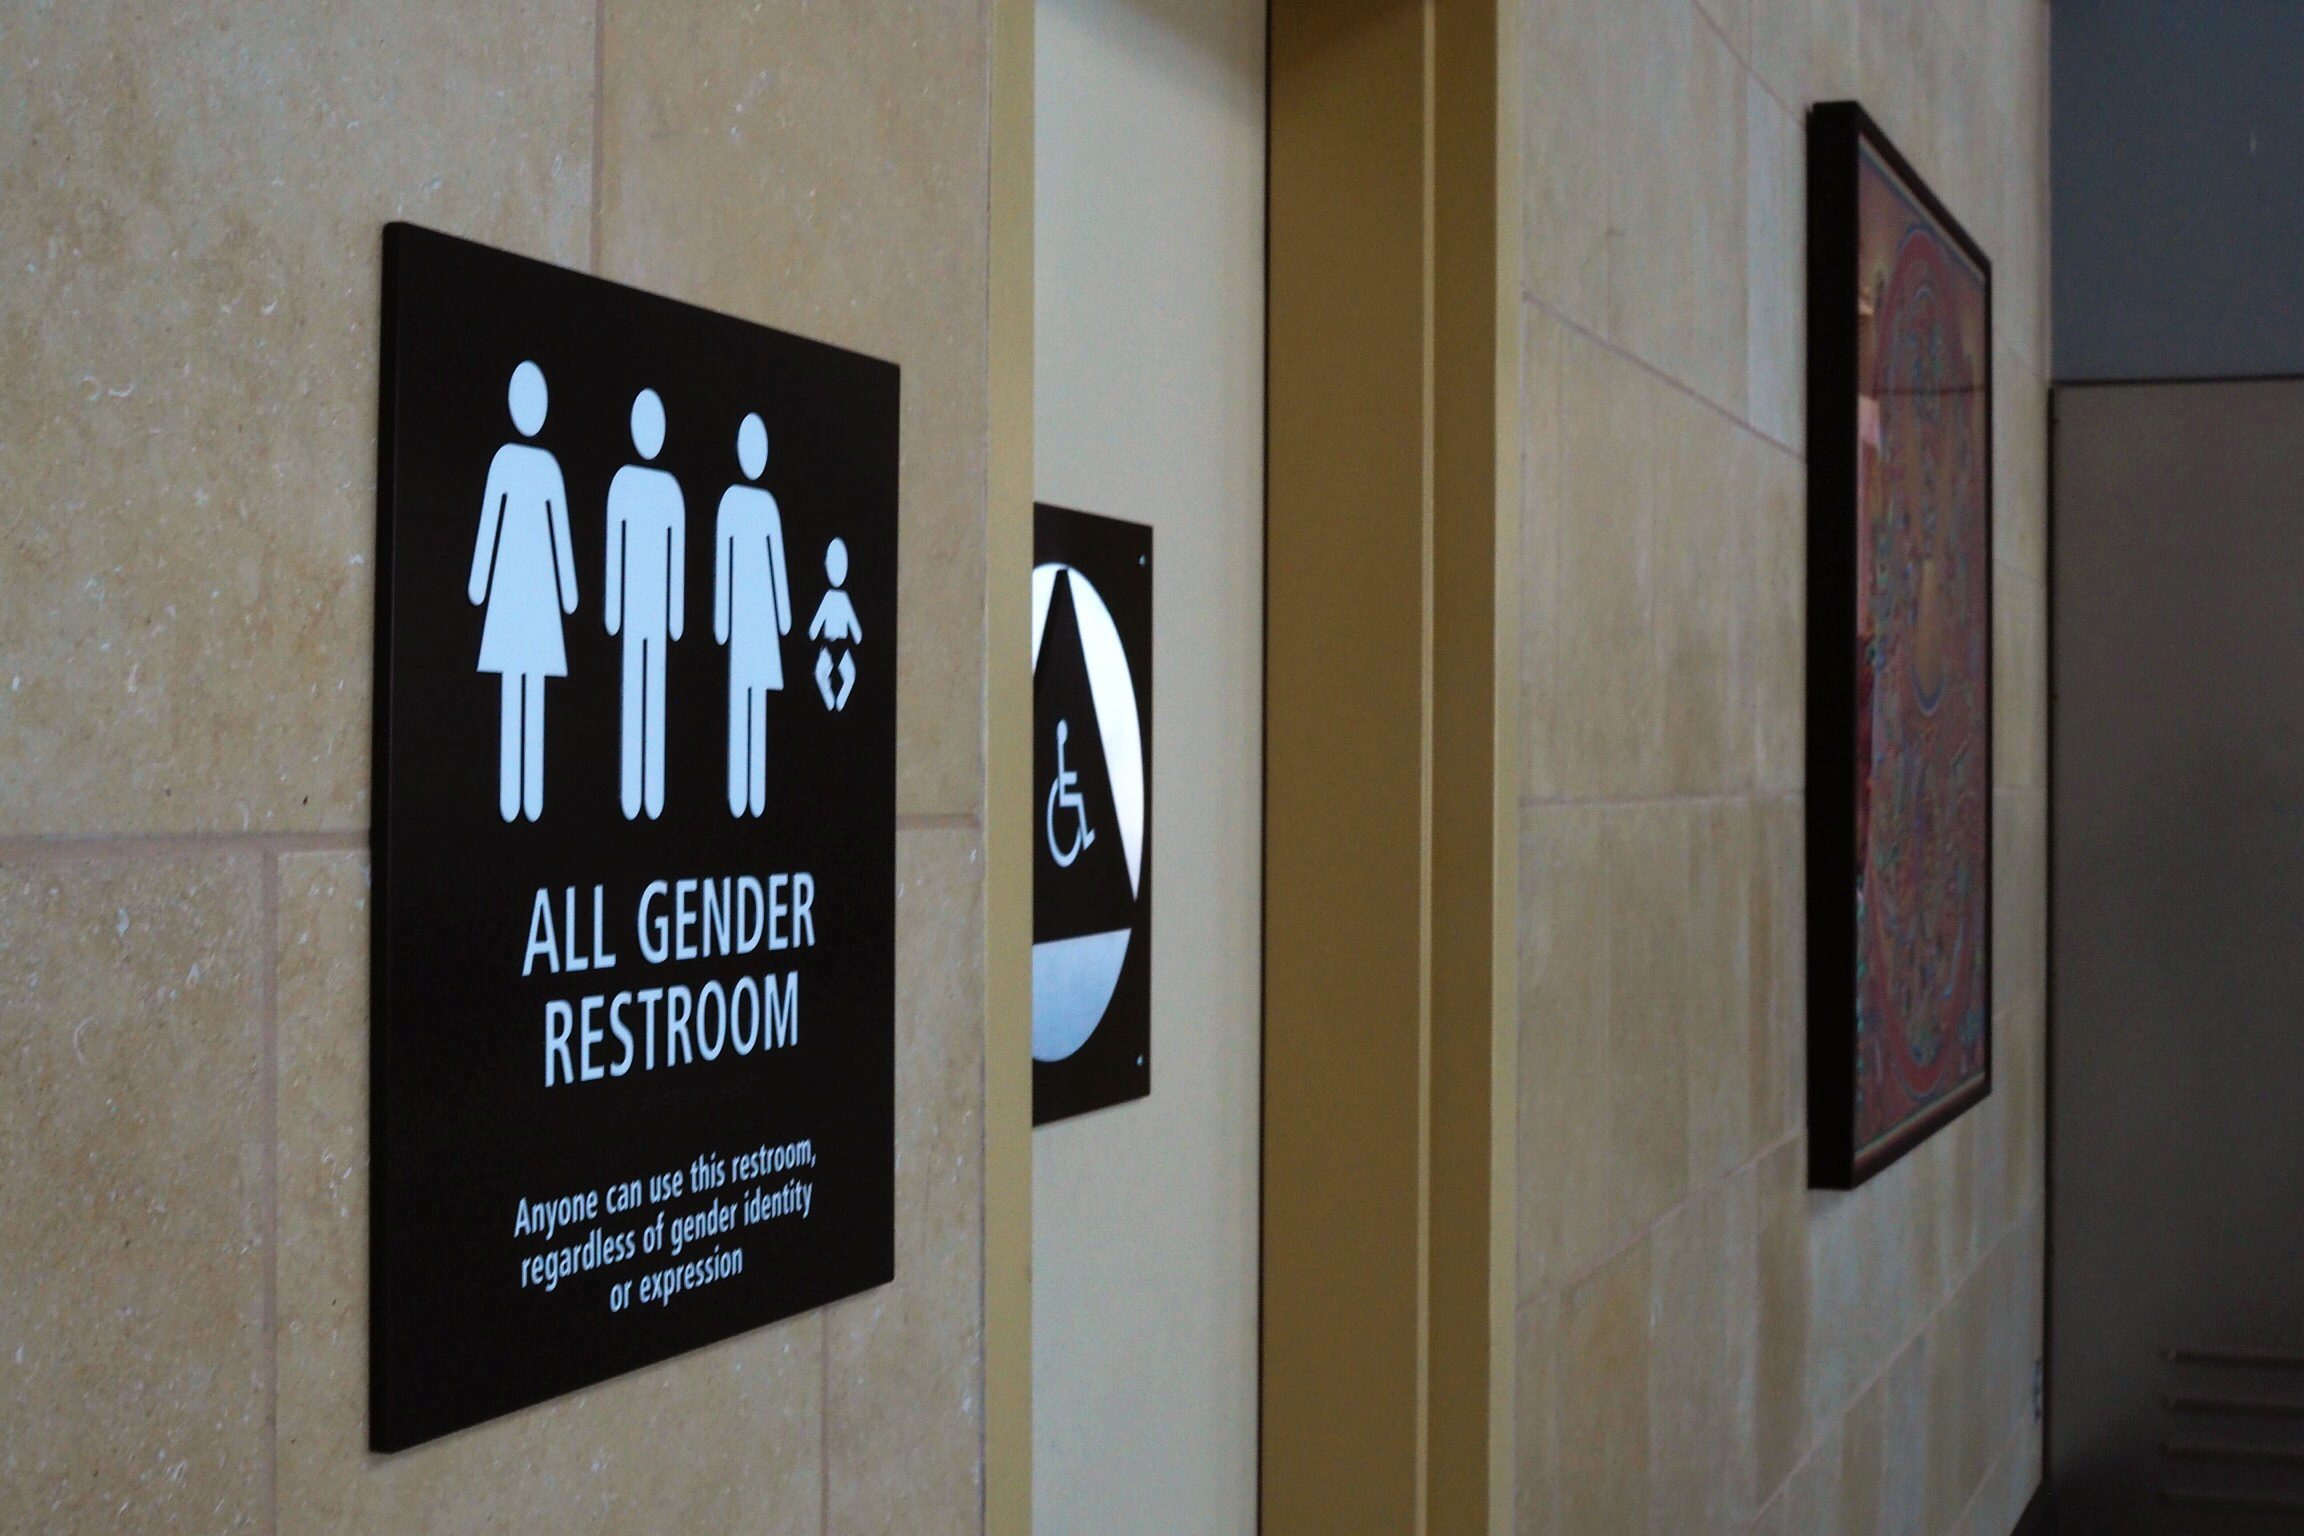 portland's single-stall bathrooms will be gender-neutral | kgw